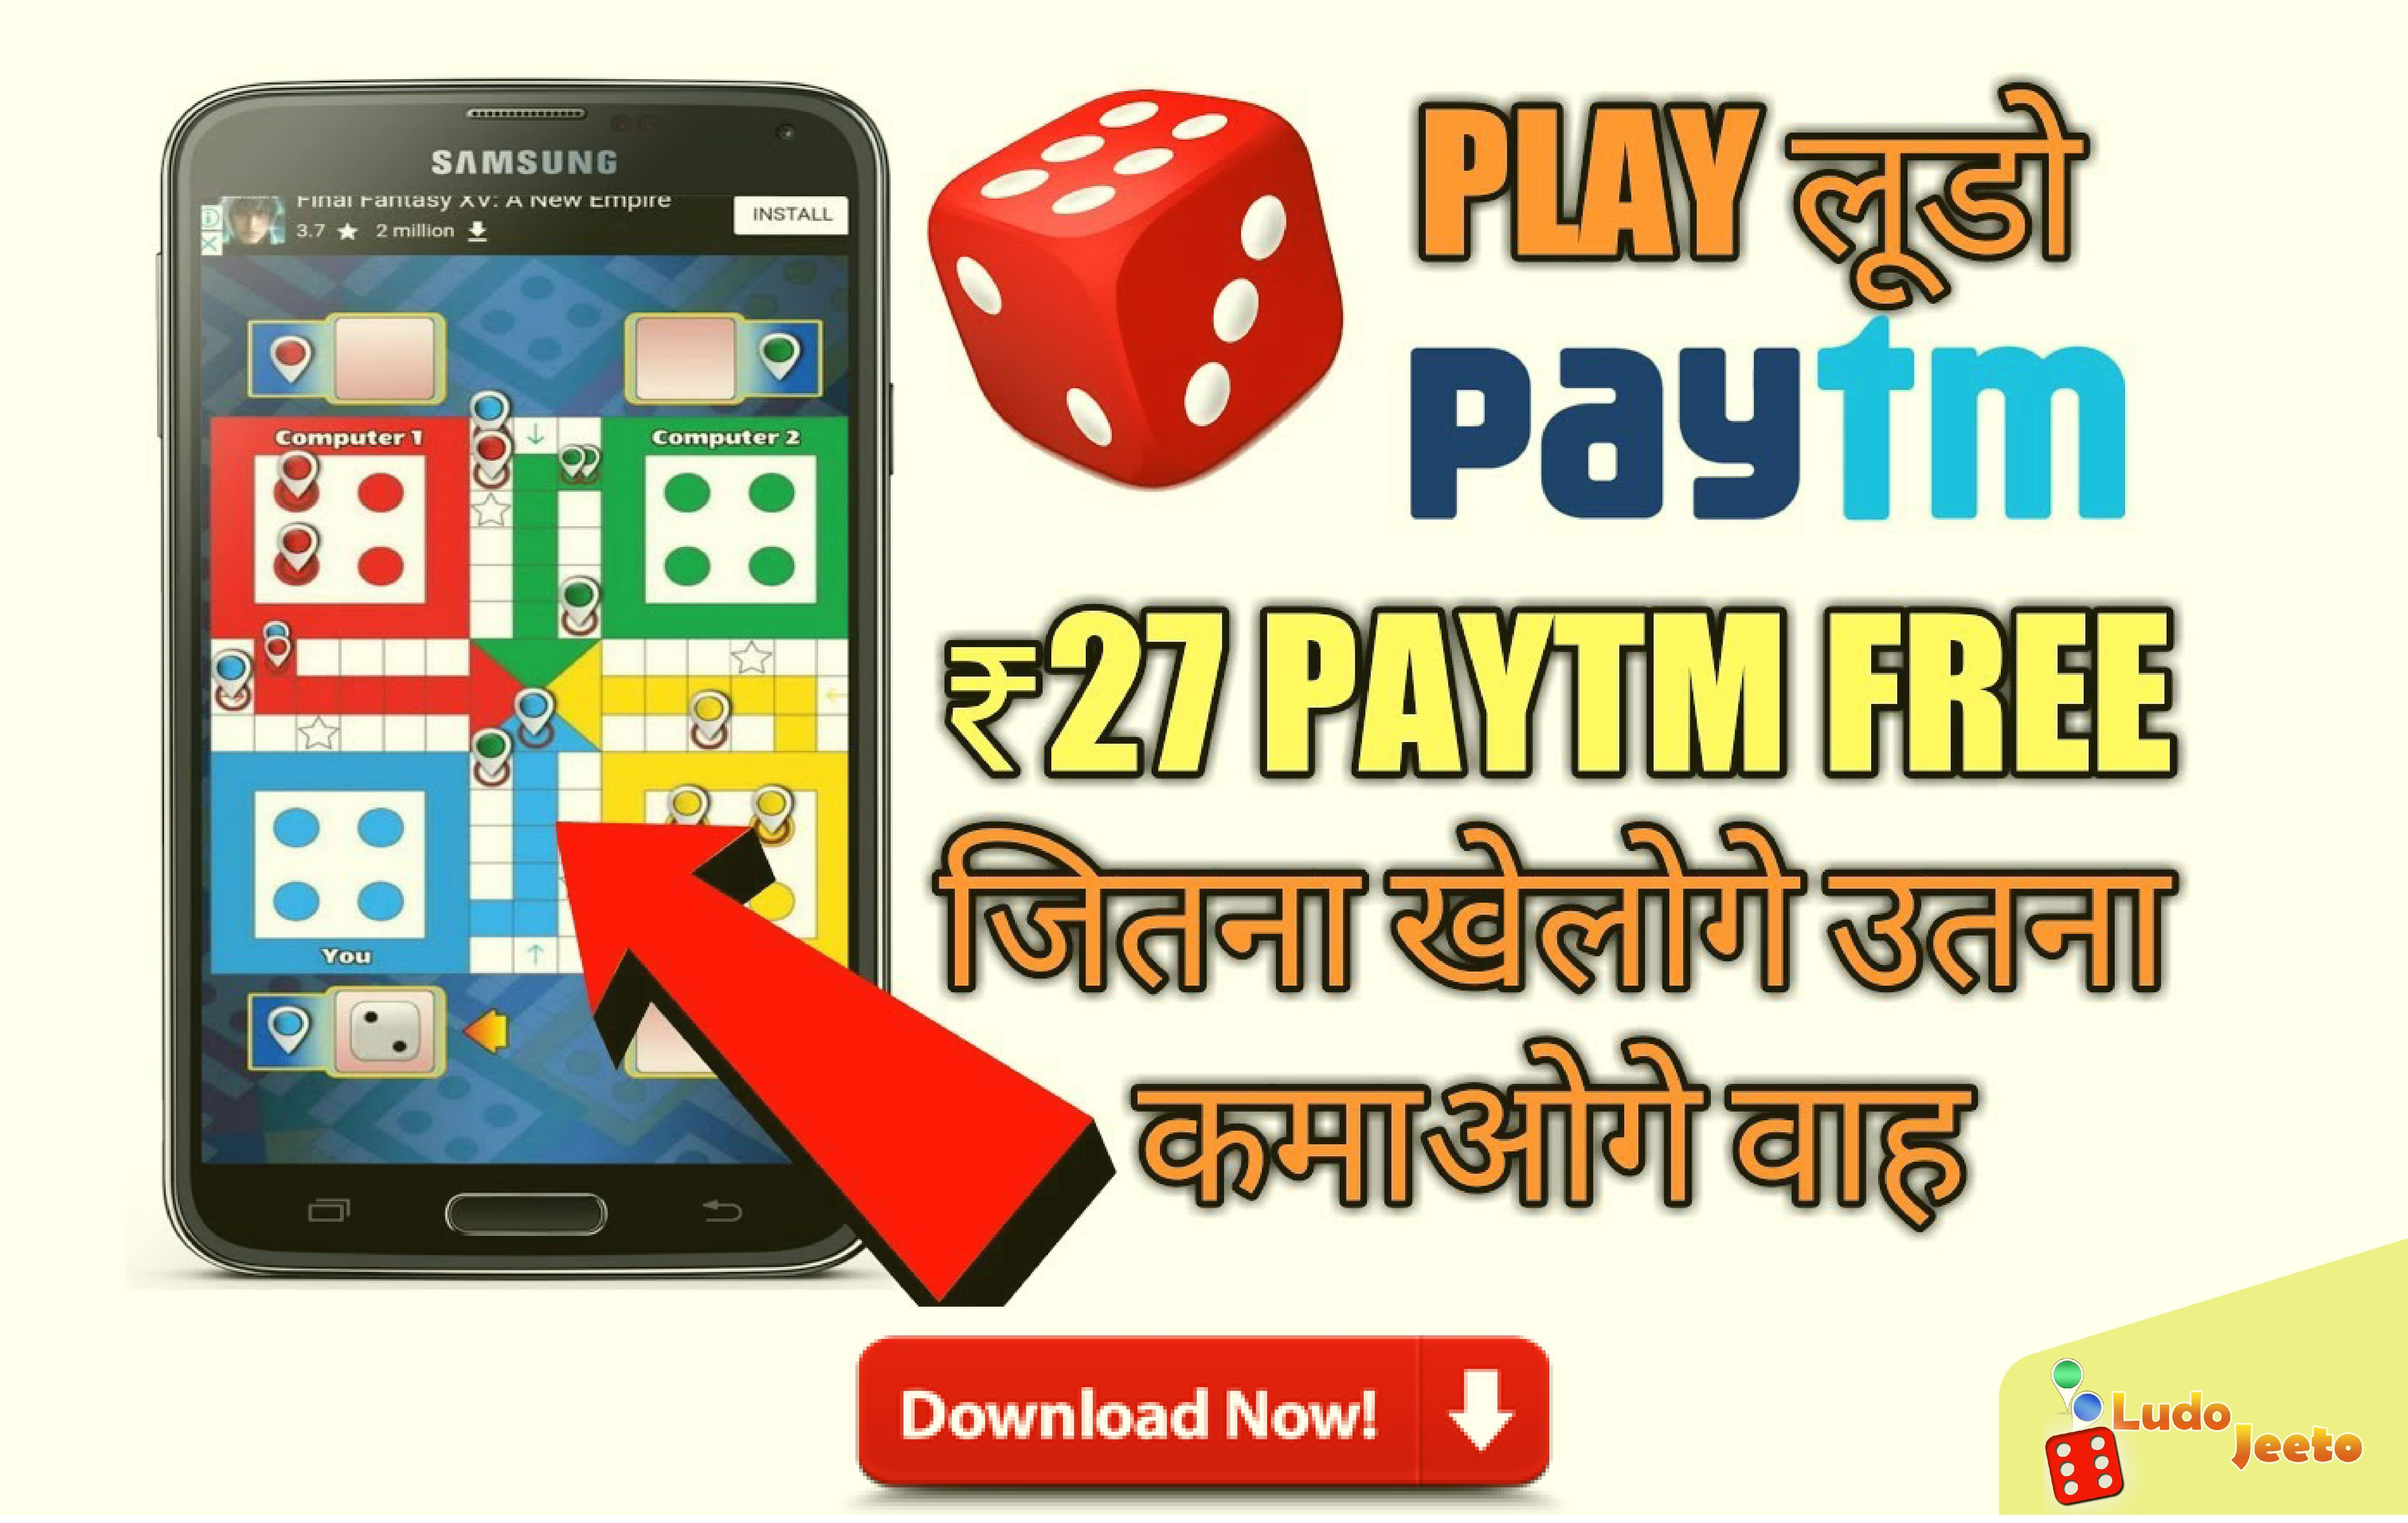 Mobile app games that pay real money